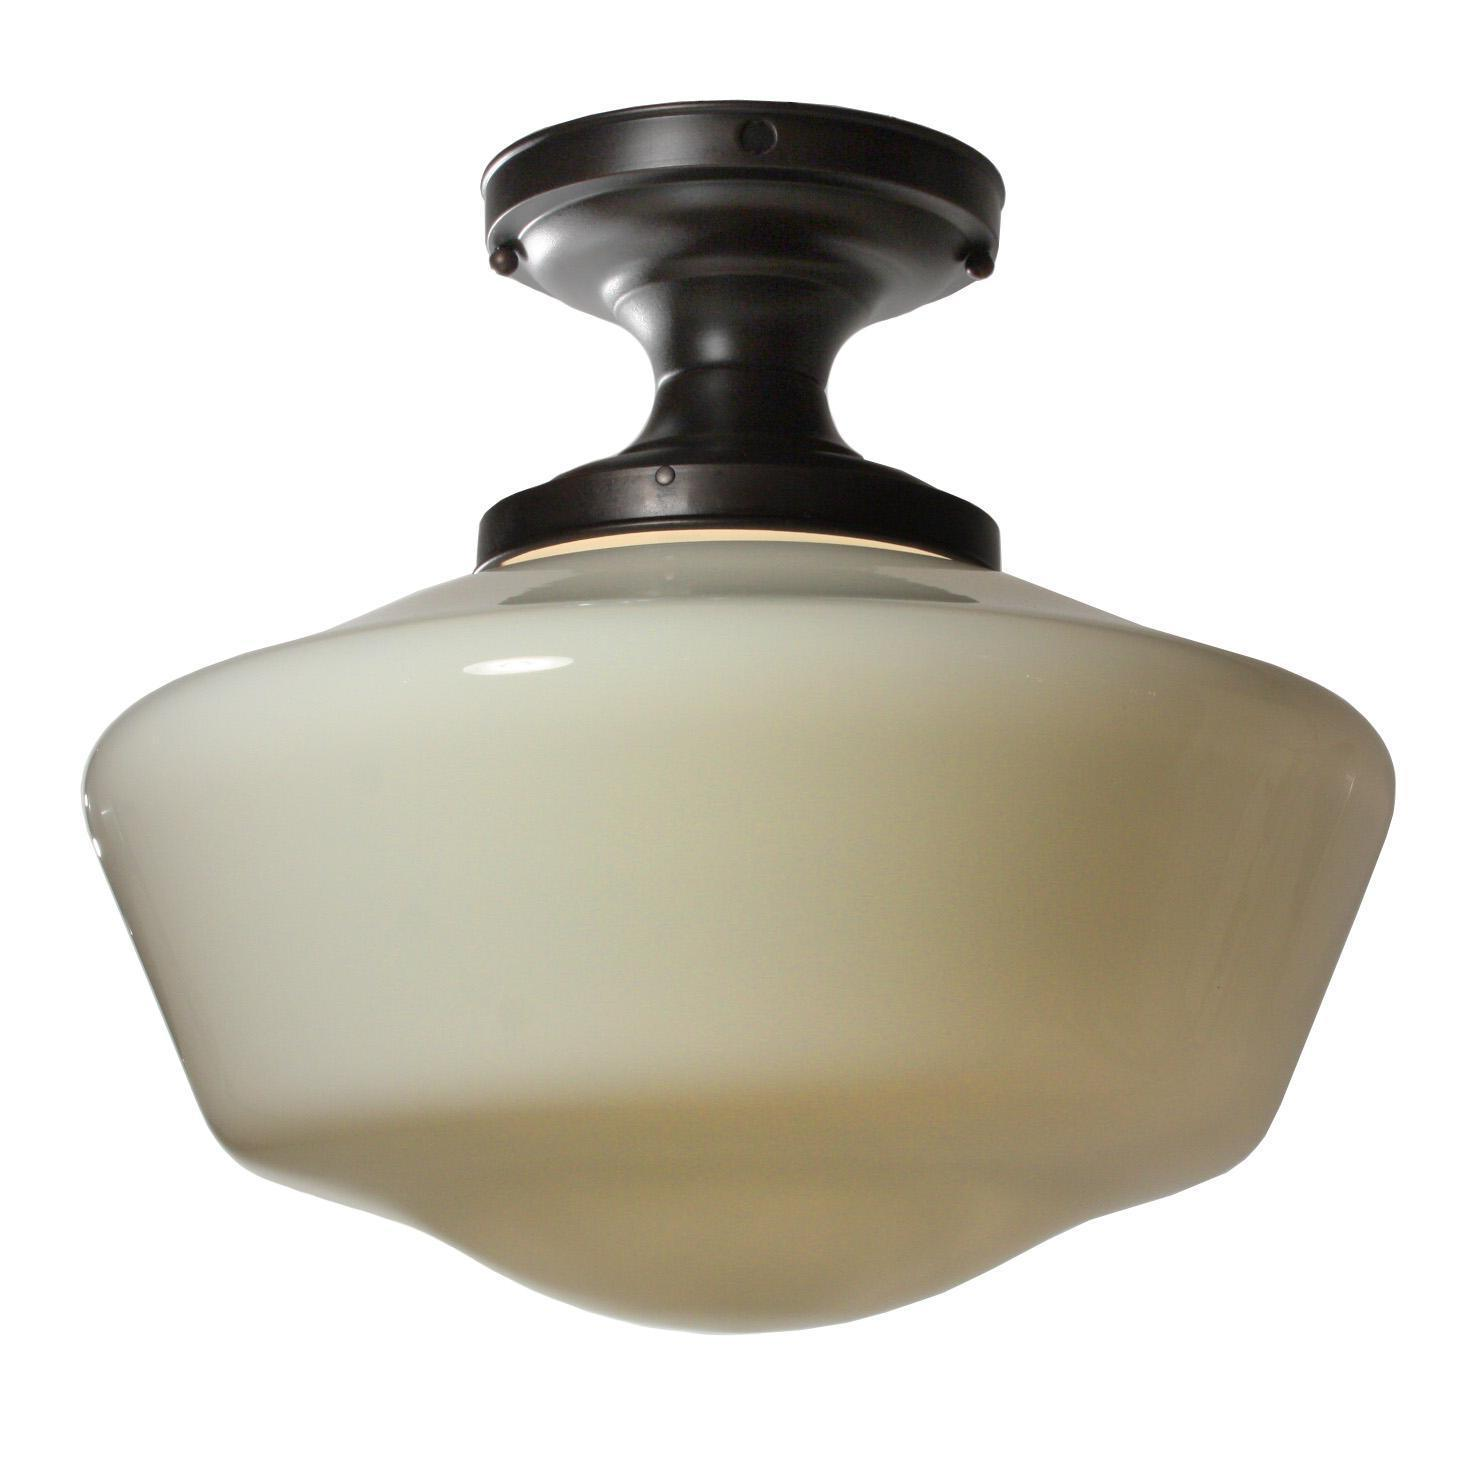 Antique Flush Mount Schoolhouse Light with Glass Shade